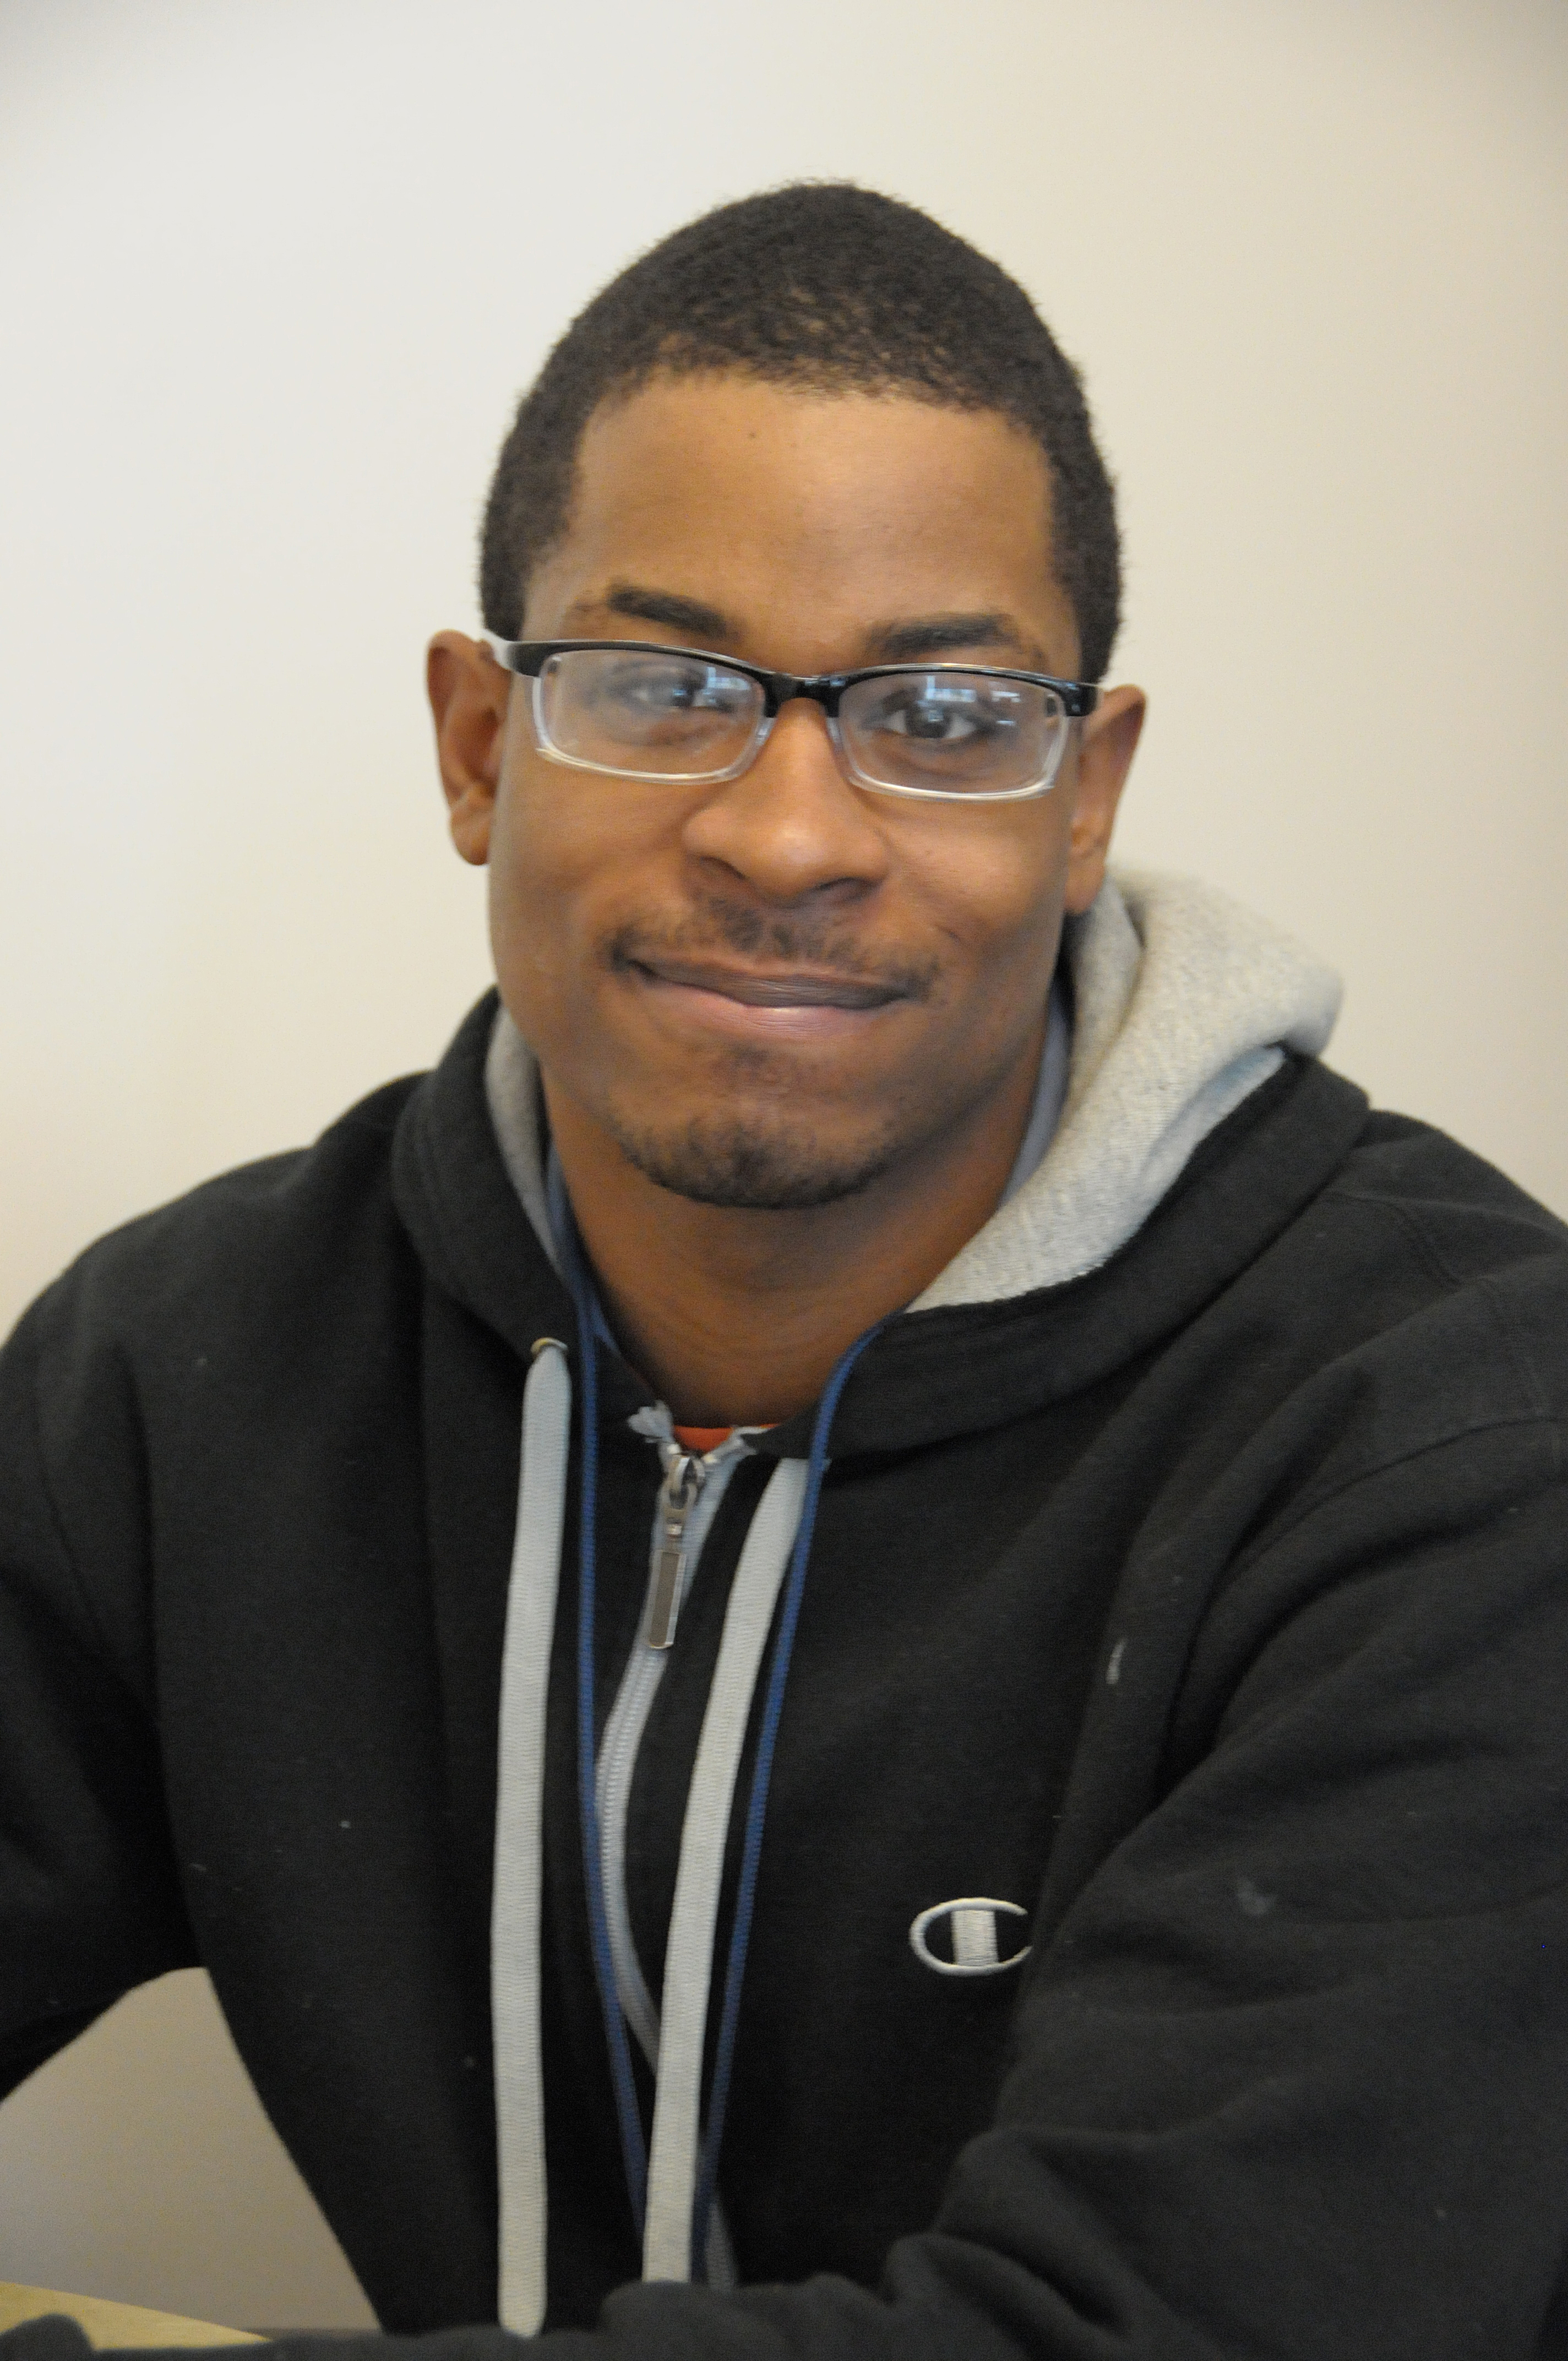 With the help of Gateway Community College's Center for Students and Families, Stephen found work, housing and other support.